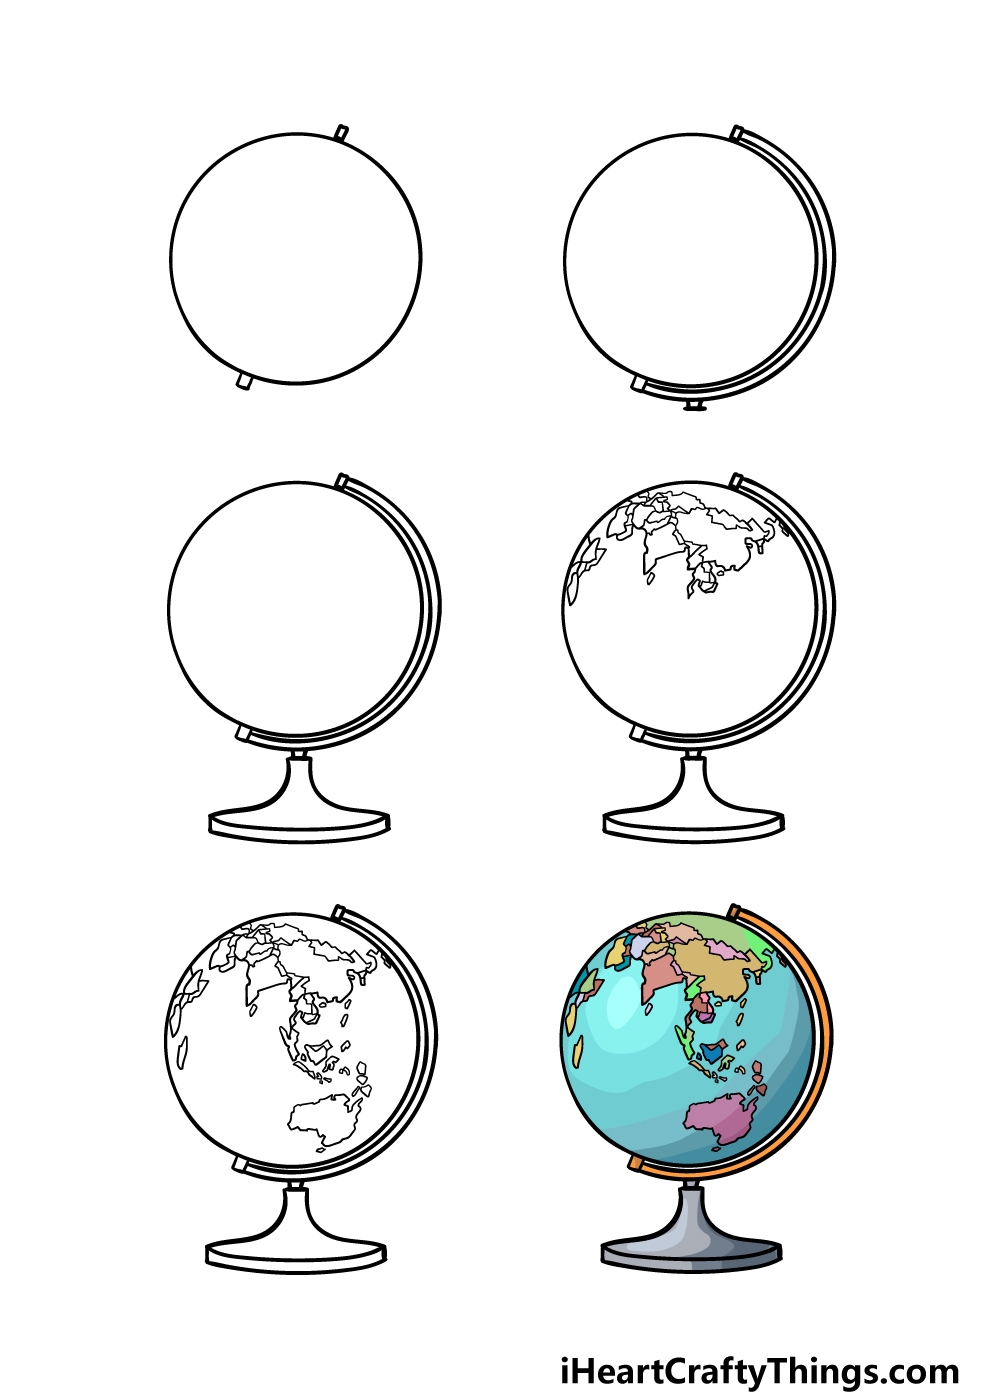 how to draw a globe in 6 steps